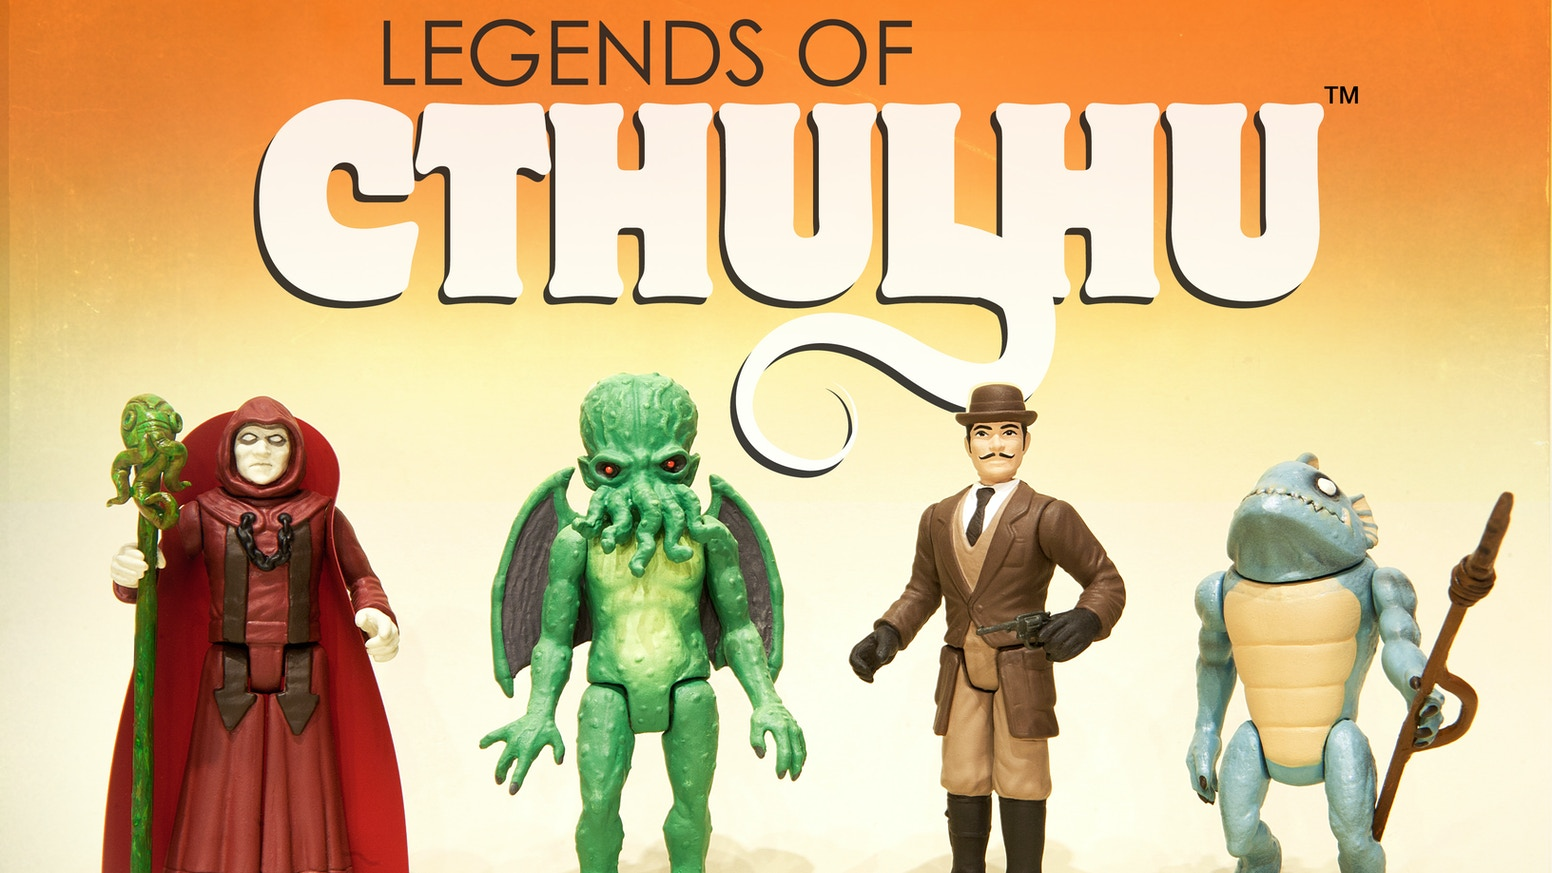 Legends of Cthulhu Retro Action Figure Toy Line by Warpo